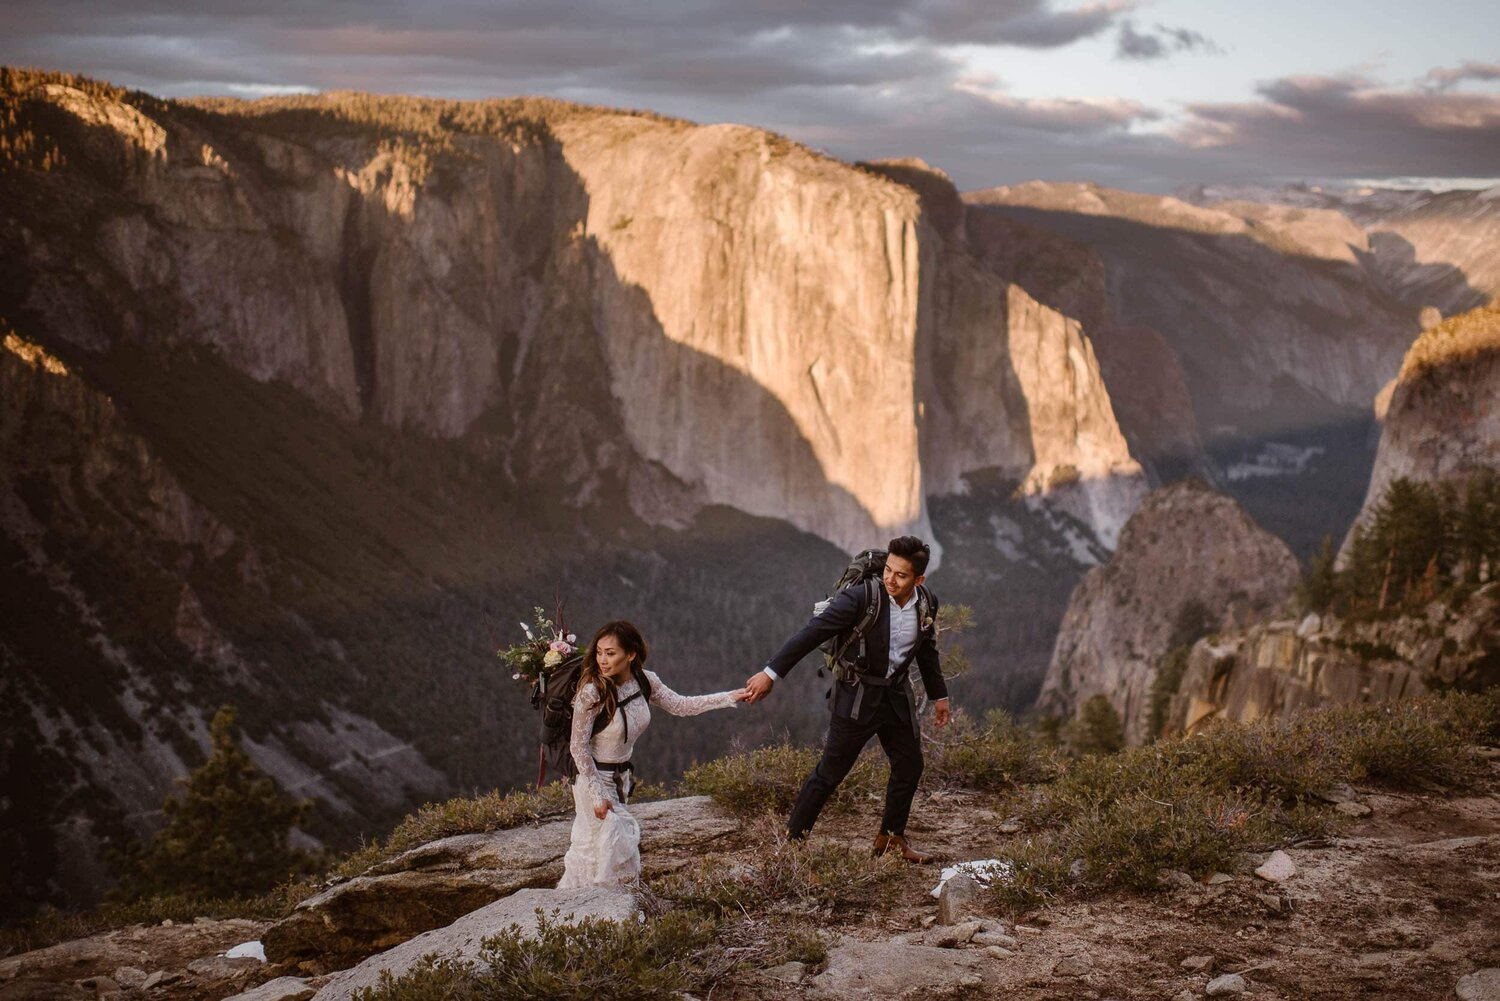 Bride and groom walk hand in hand while wearing backpacks in Yosemite National Park on their wedding day.